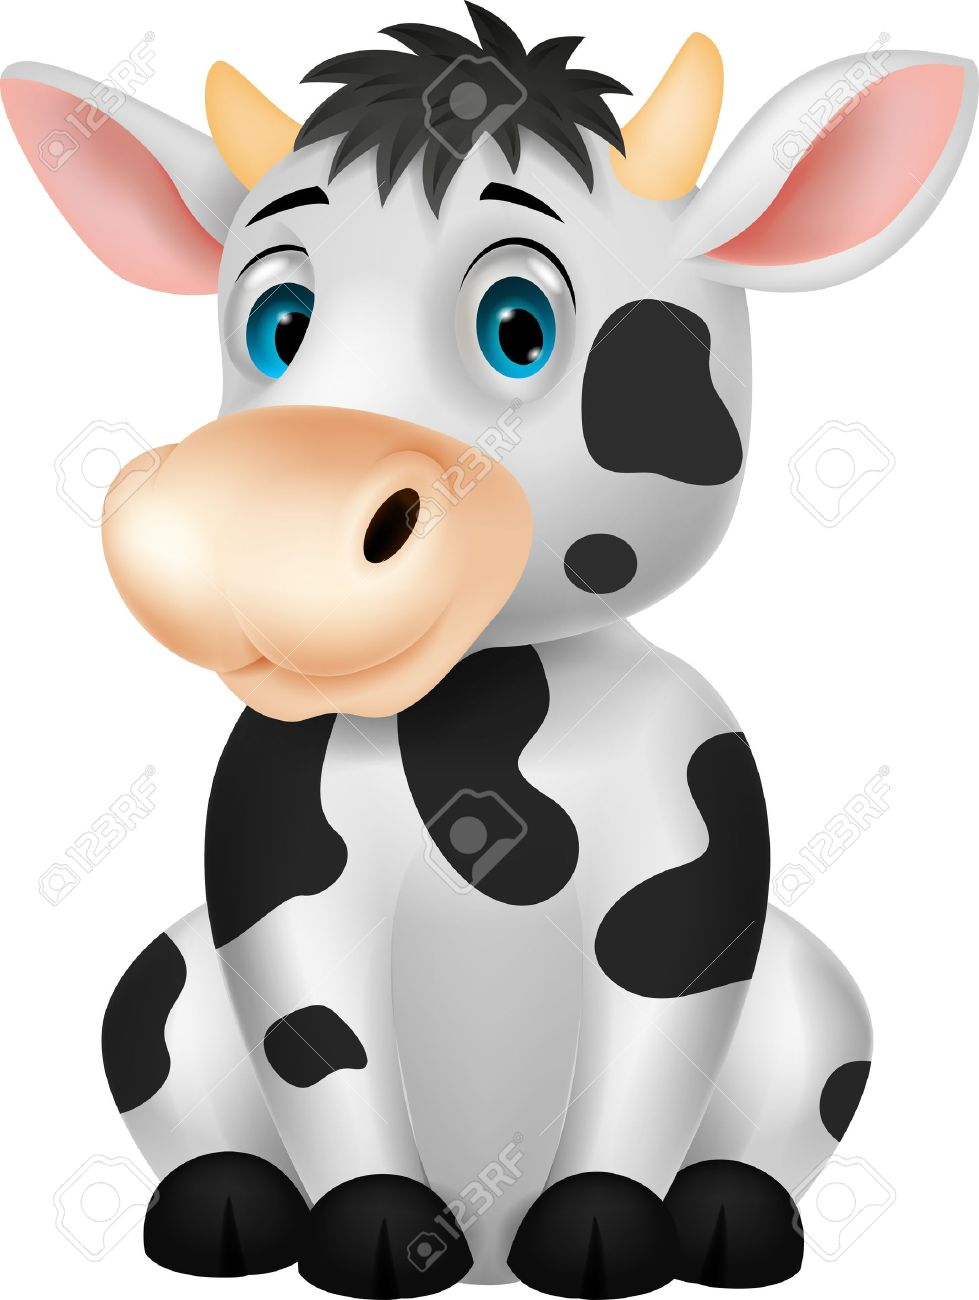 Cute Cow Cartoon Sitting Royalty Free Cliparts, Vectors, And Stock ...